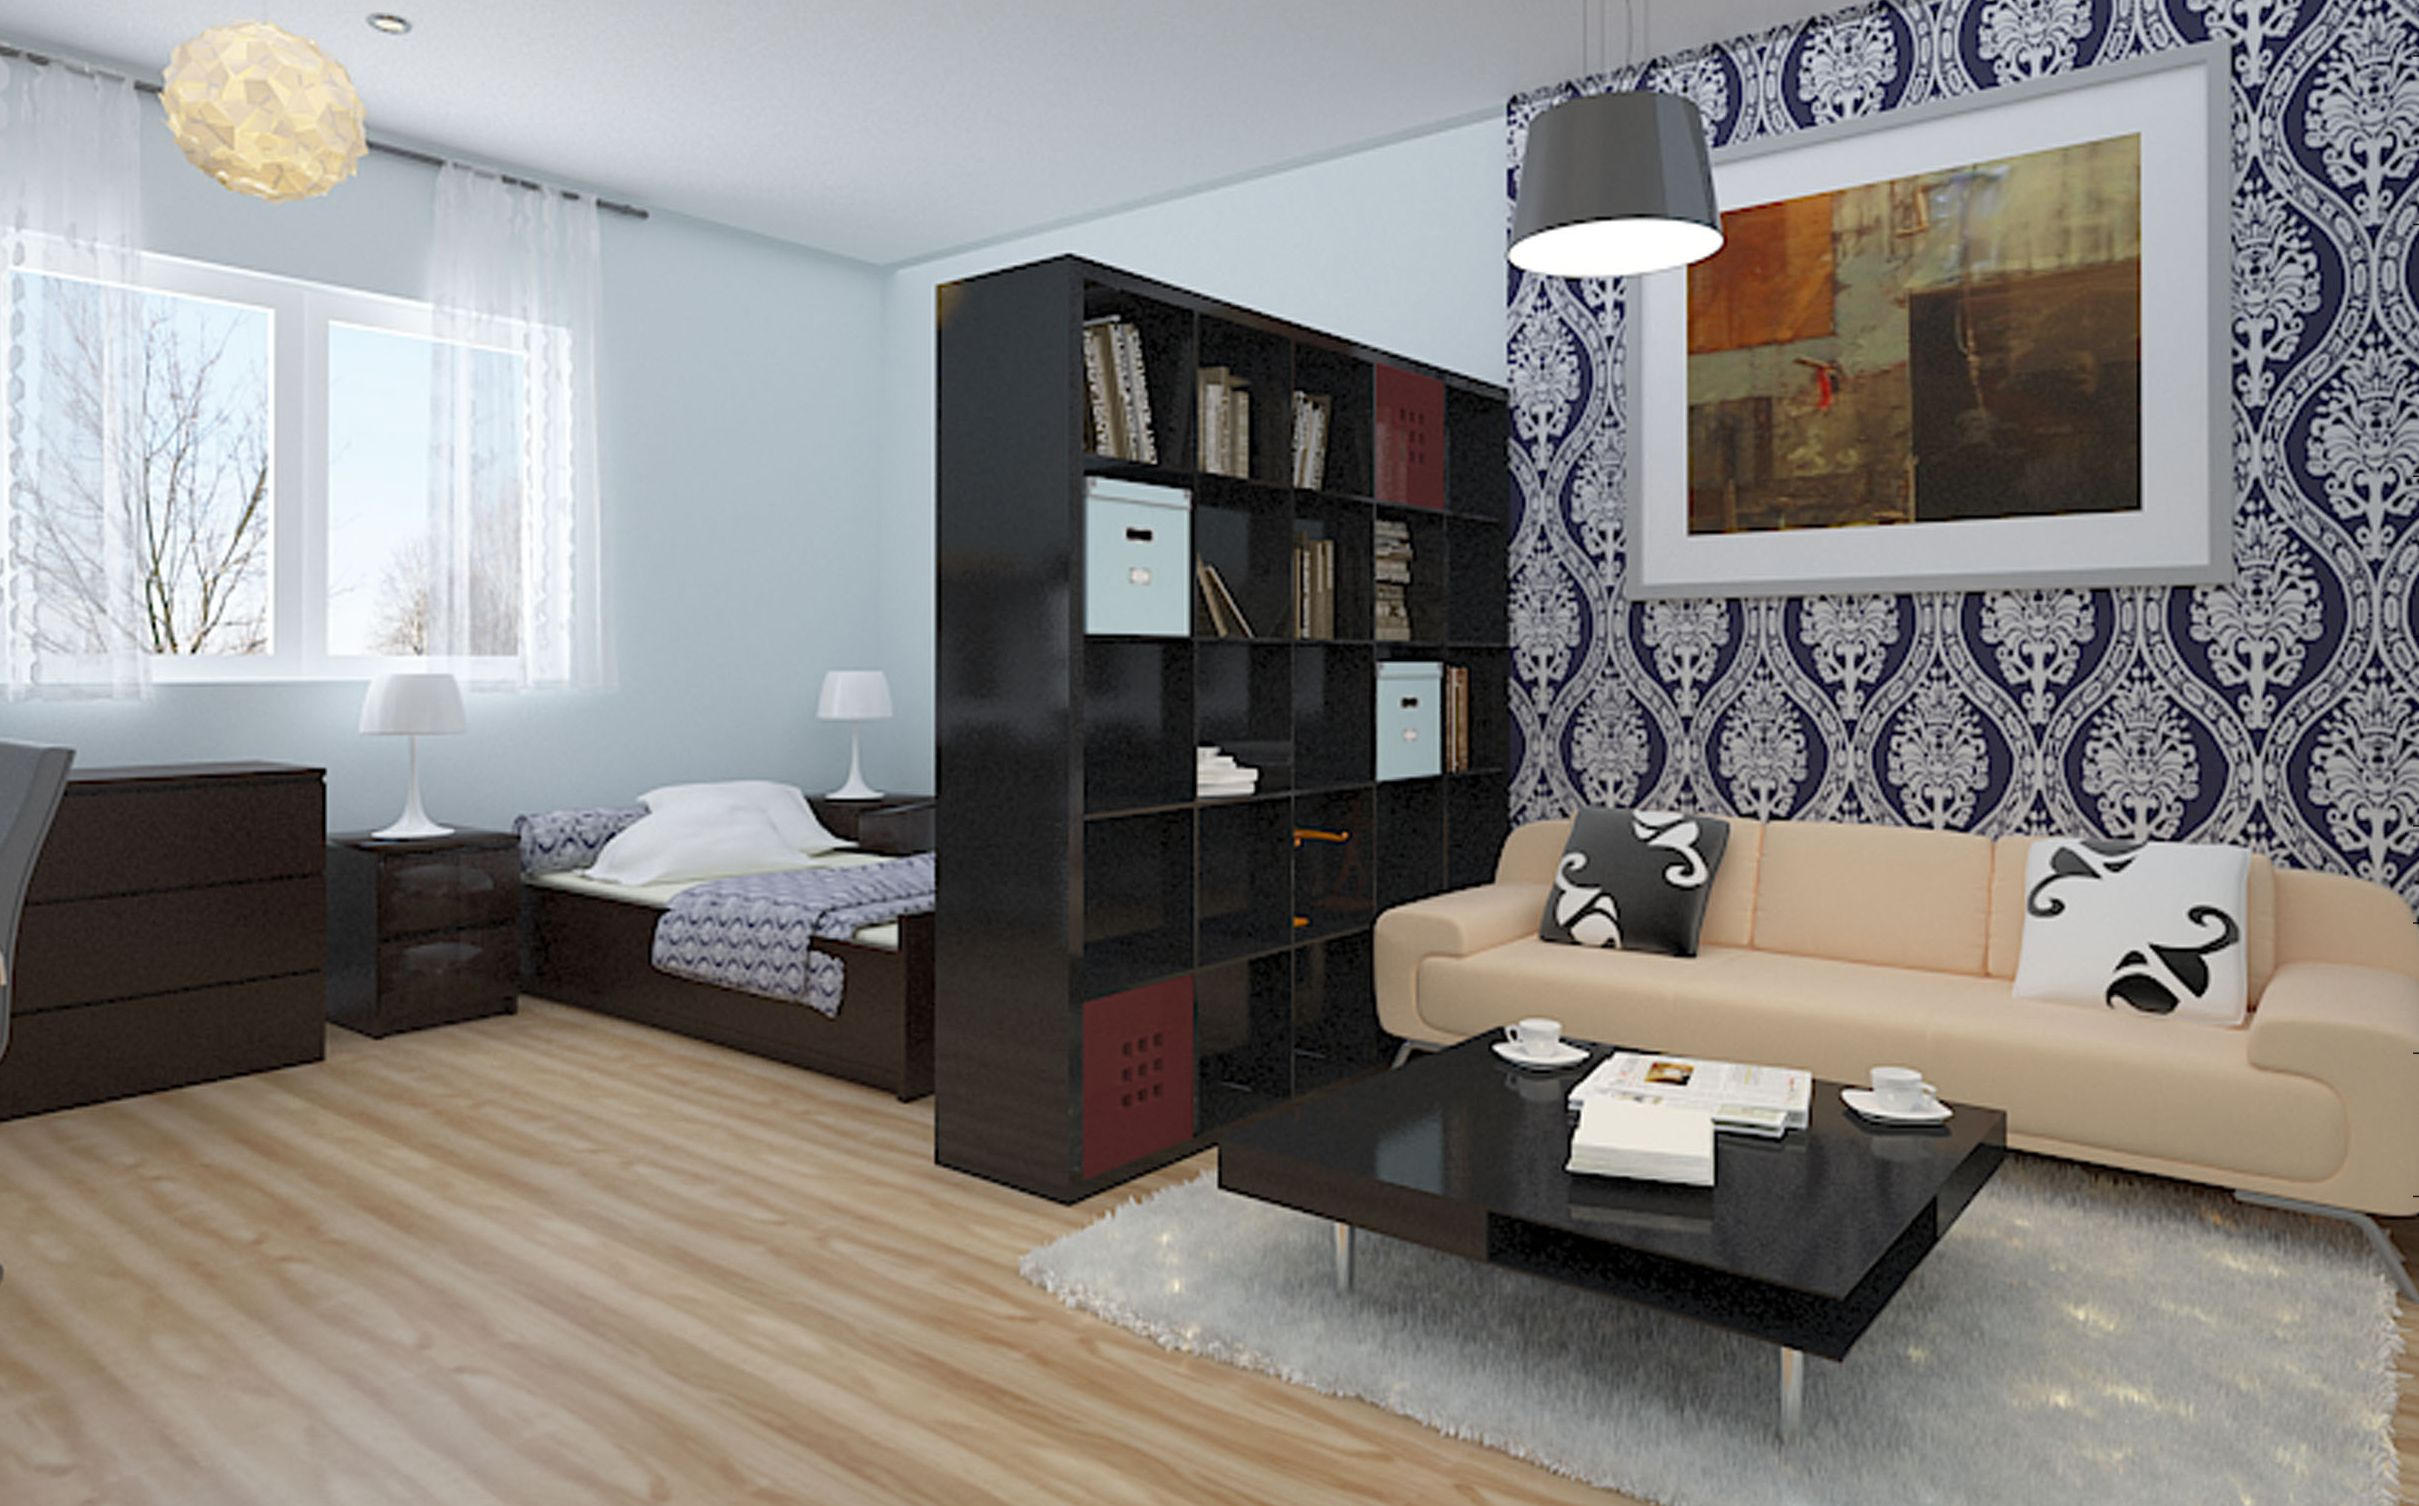 Studio Apartment Ikea 16821 HD Wallpaper Desktop - Res: 2419x1506 ...